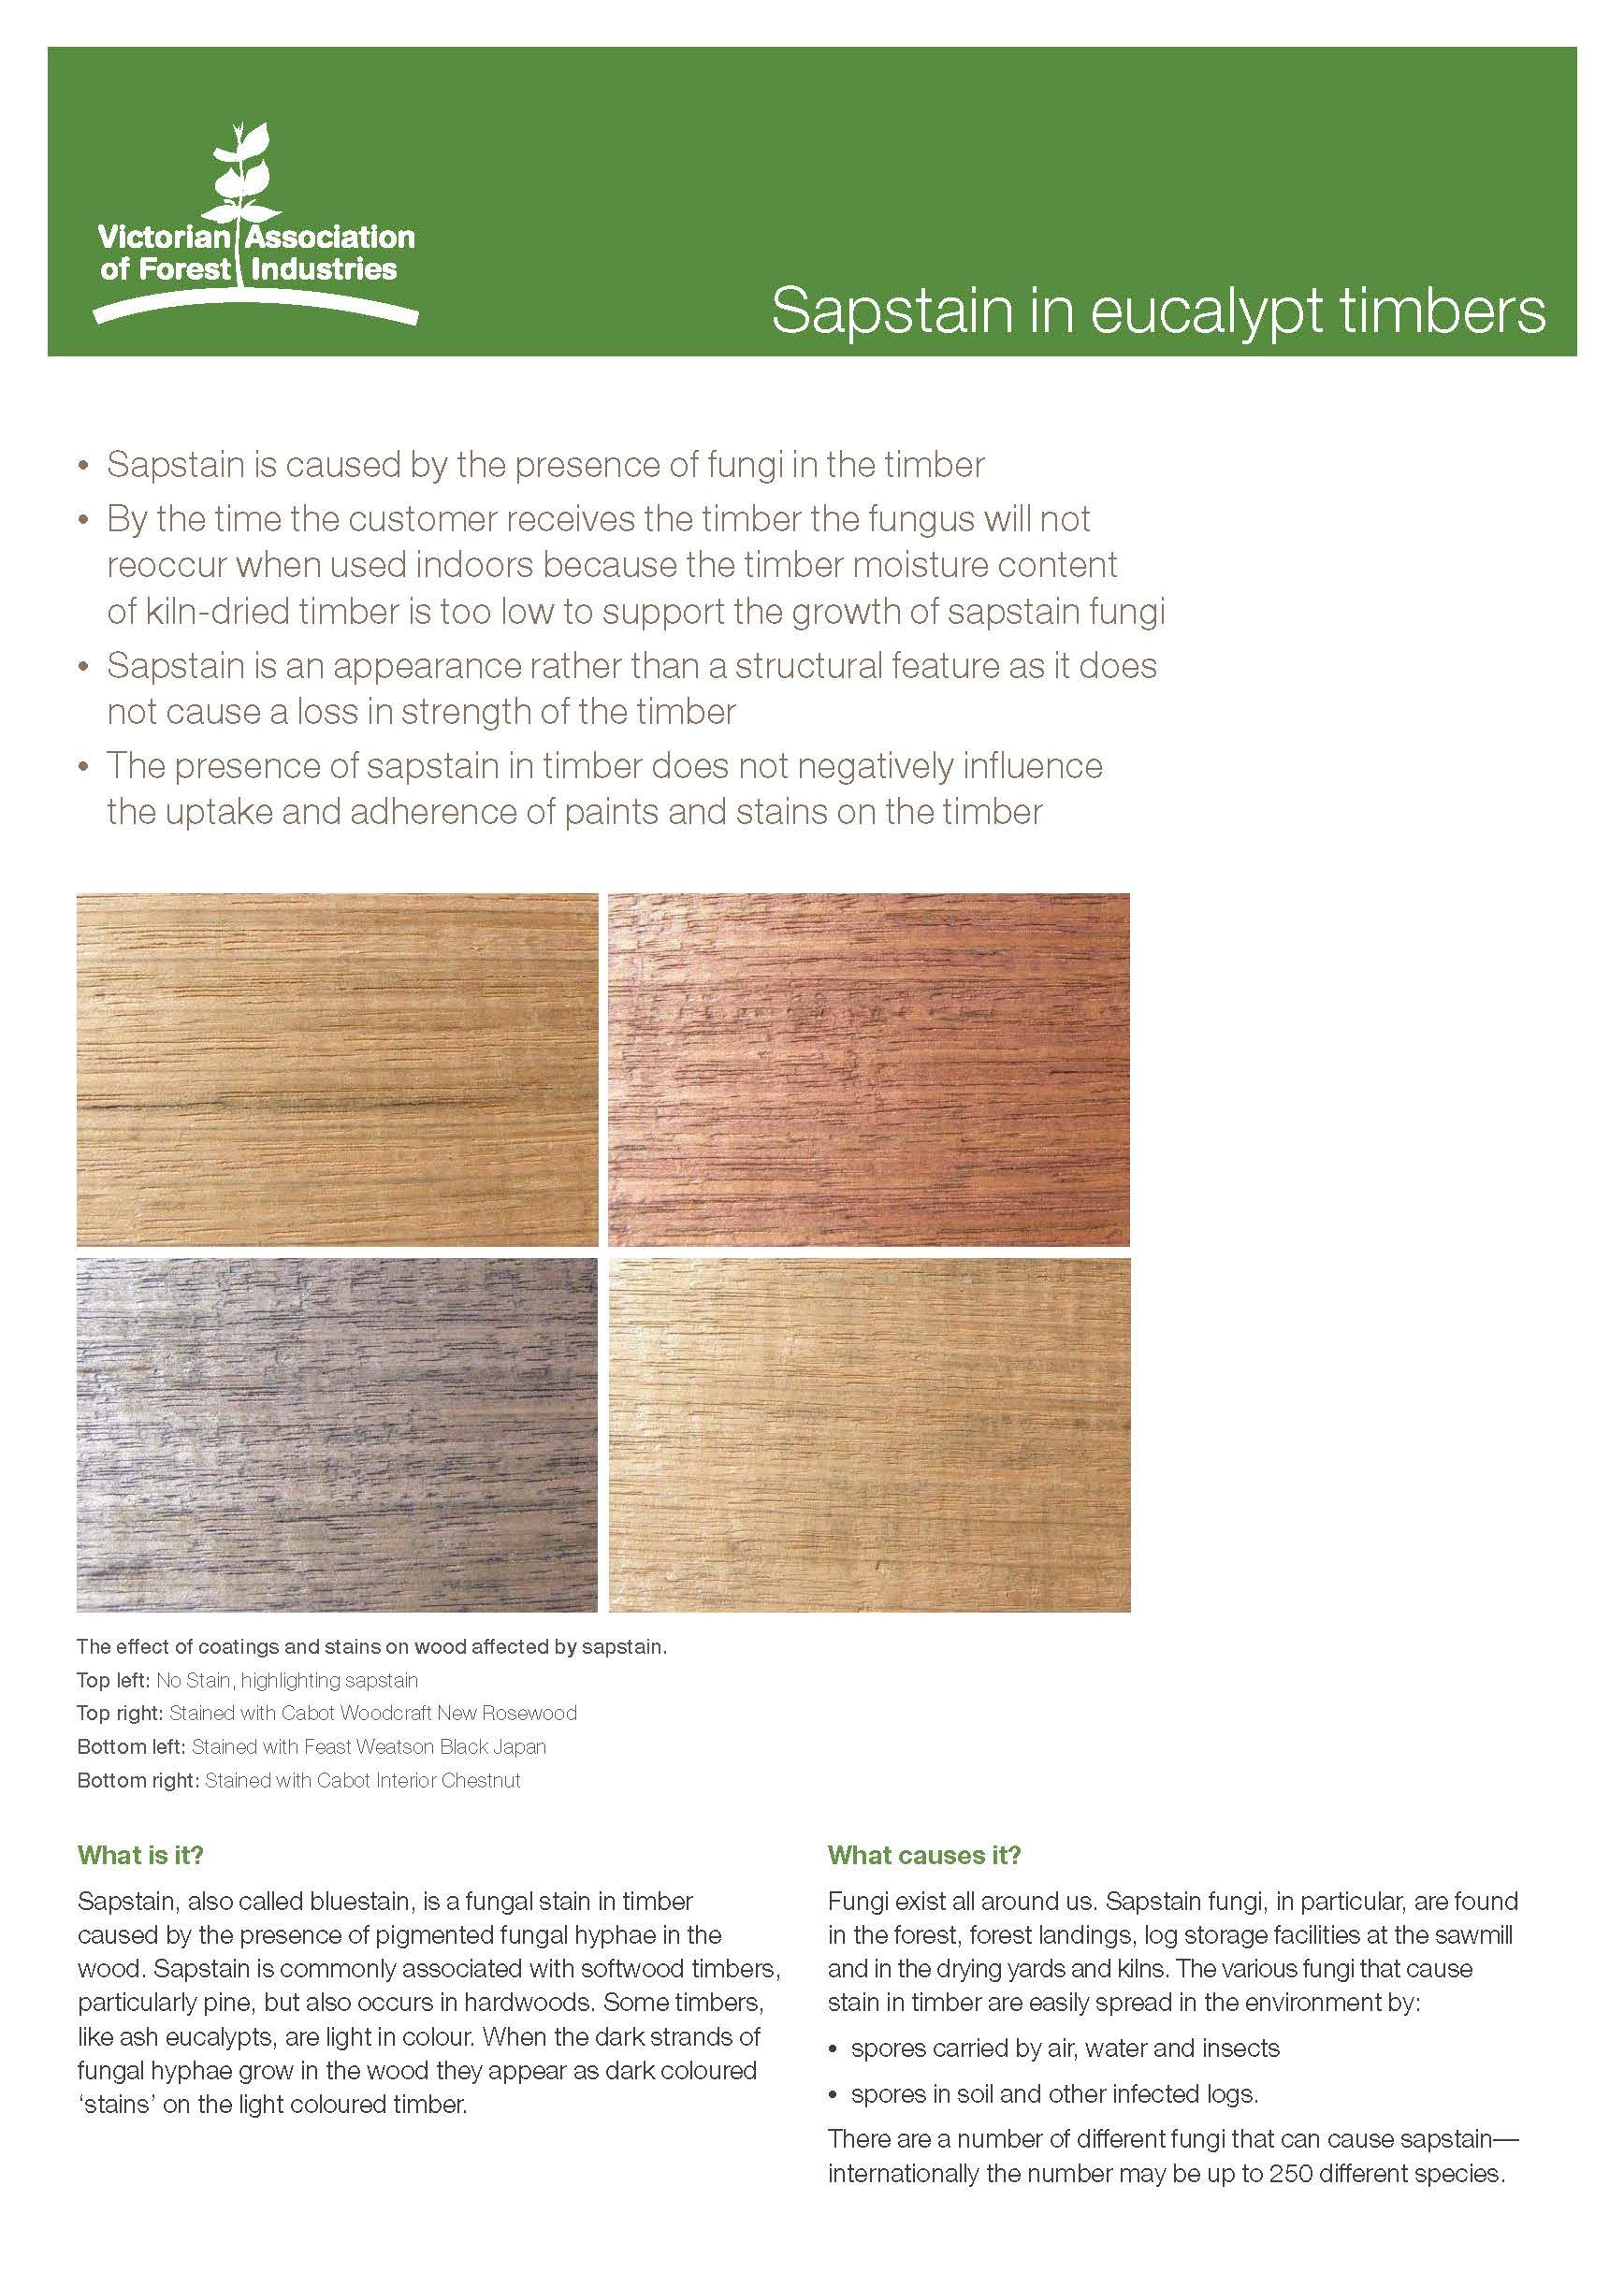 Sapstain_in_eucalypt_timbers_Part1.jpg